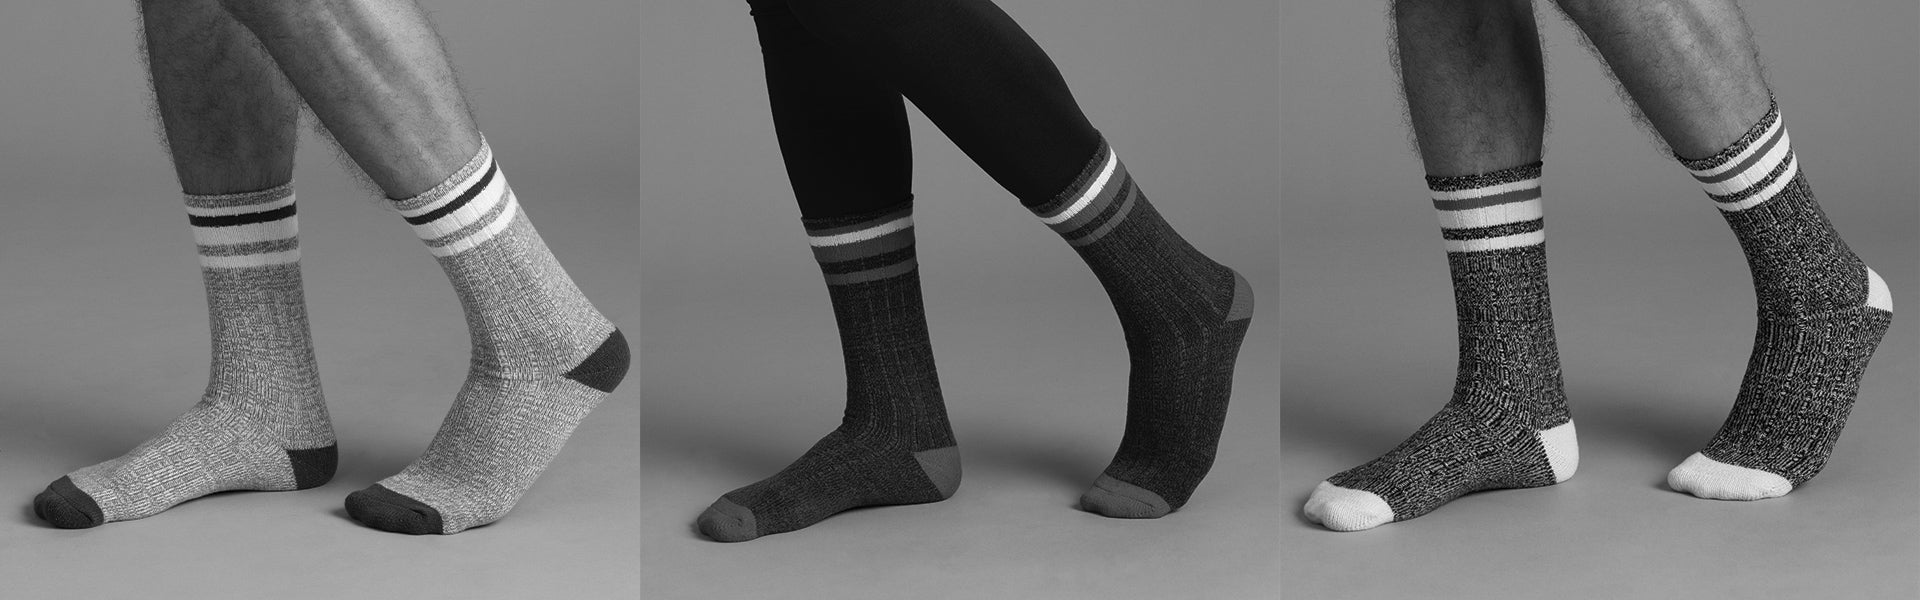 cozy socks for men